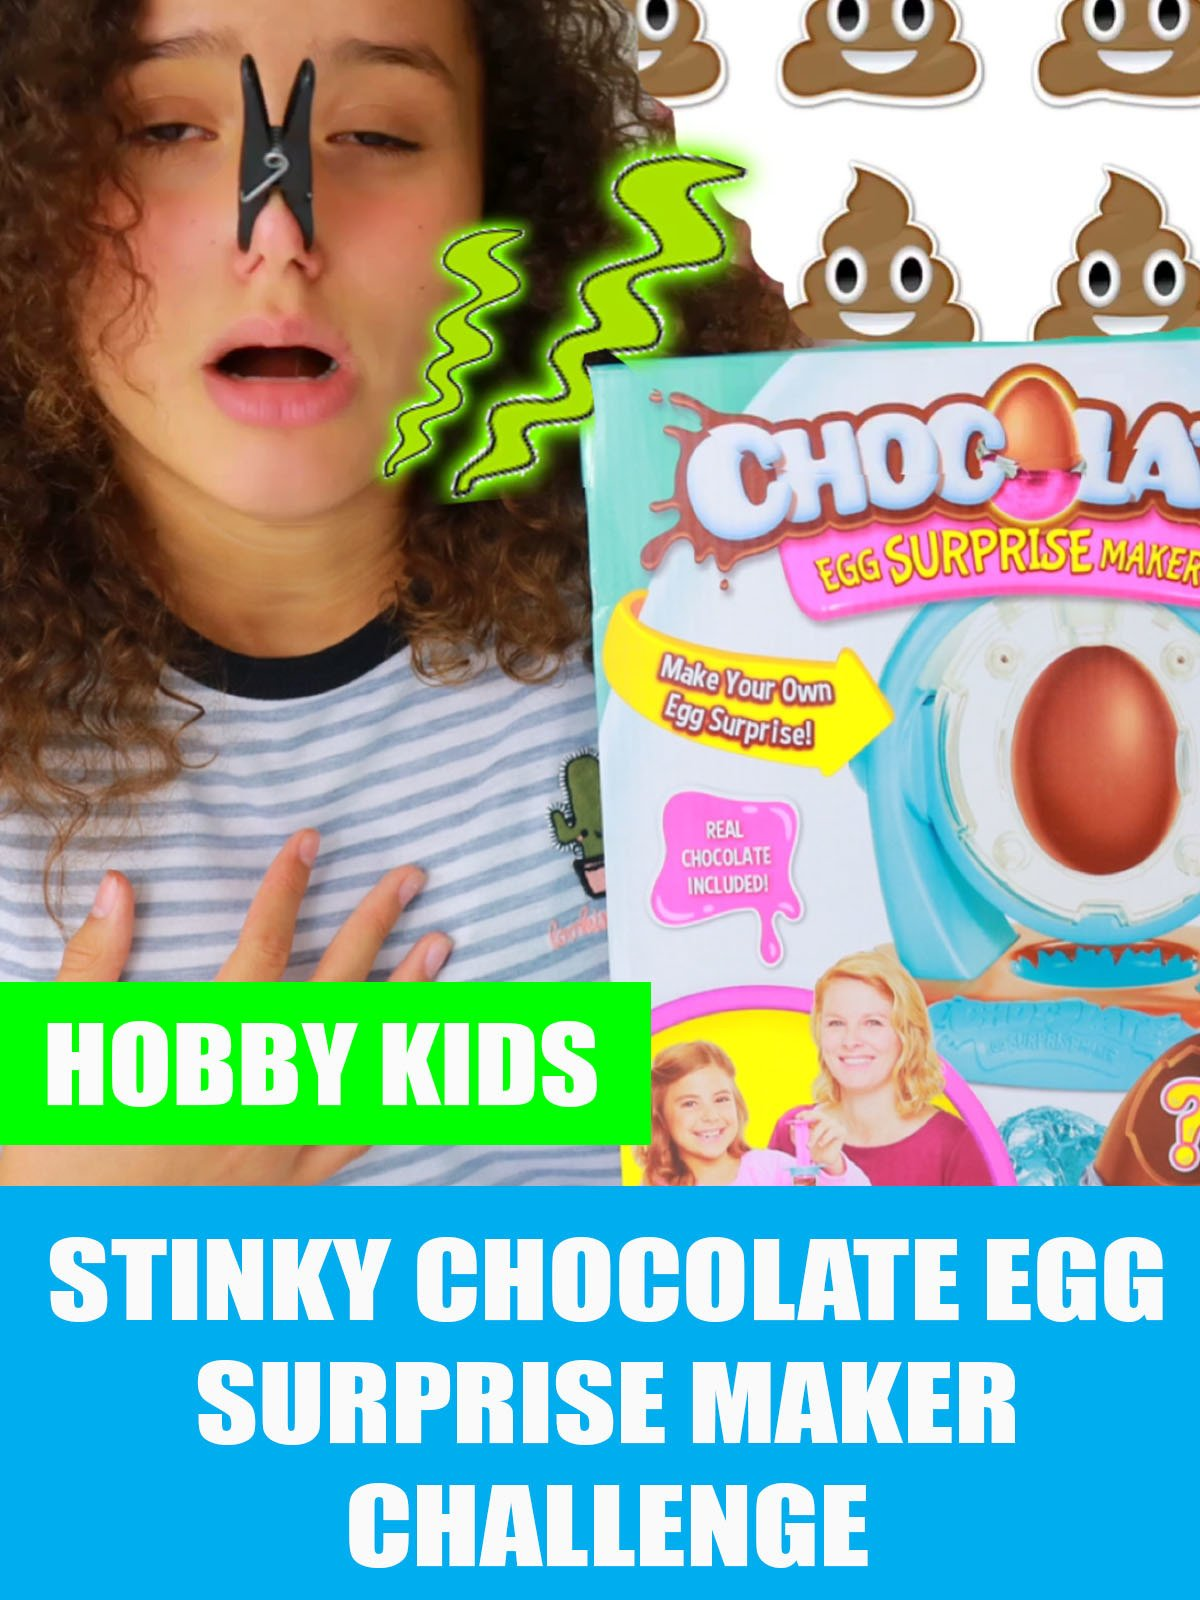 Hobby Kids Stinky Chocolate Egg Surprise Maker Challenge